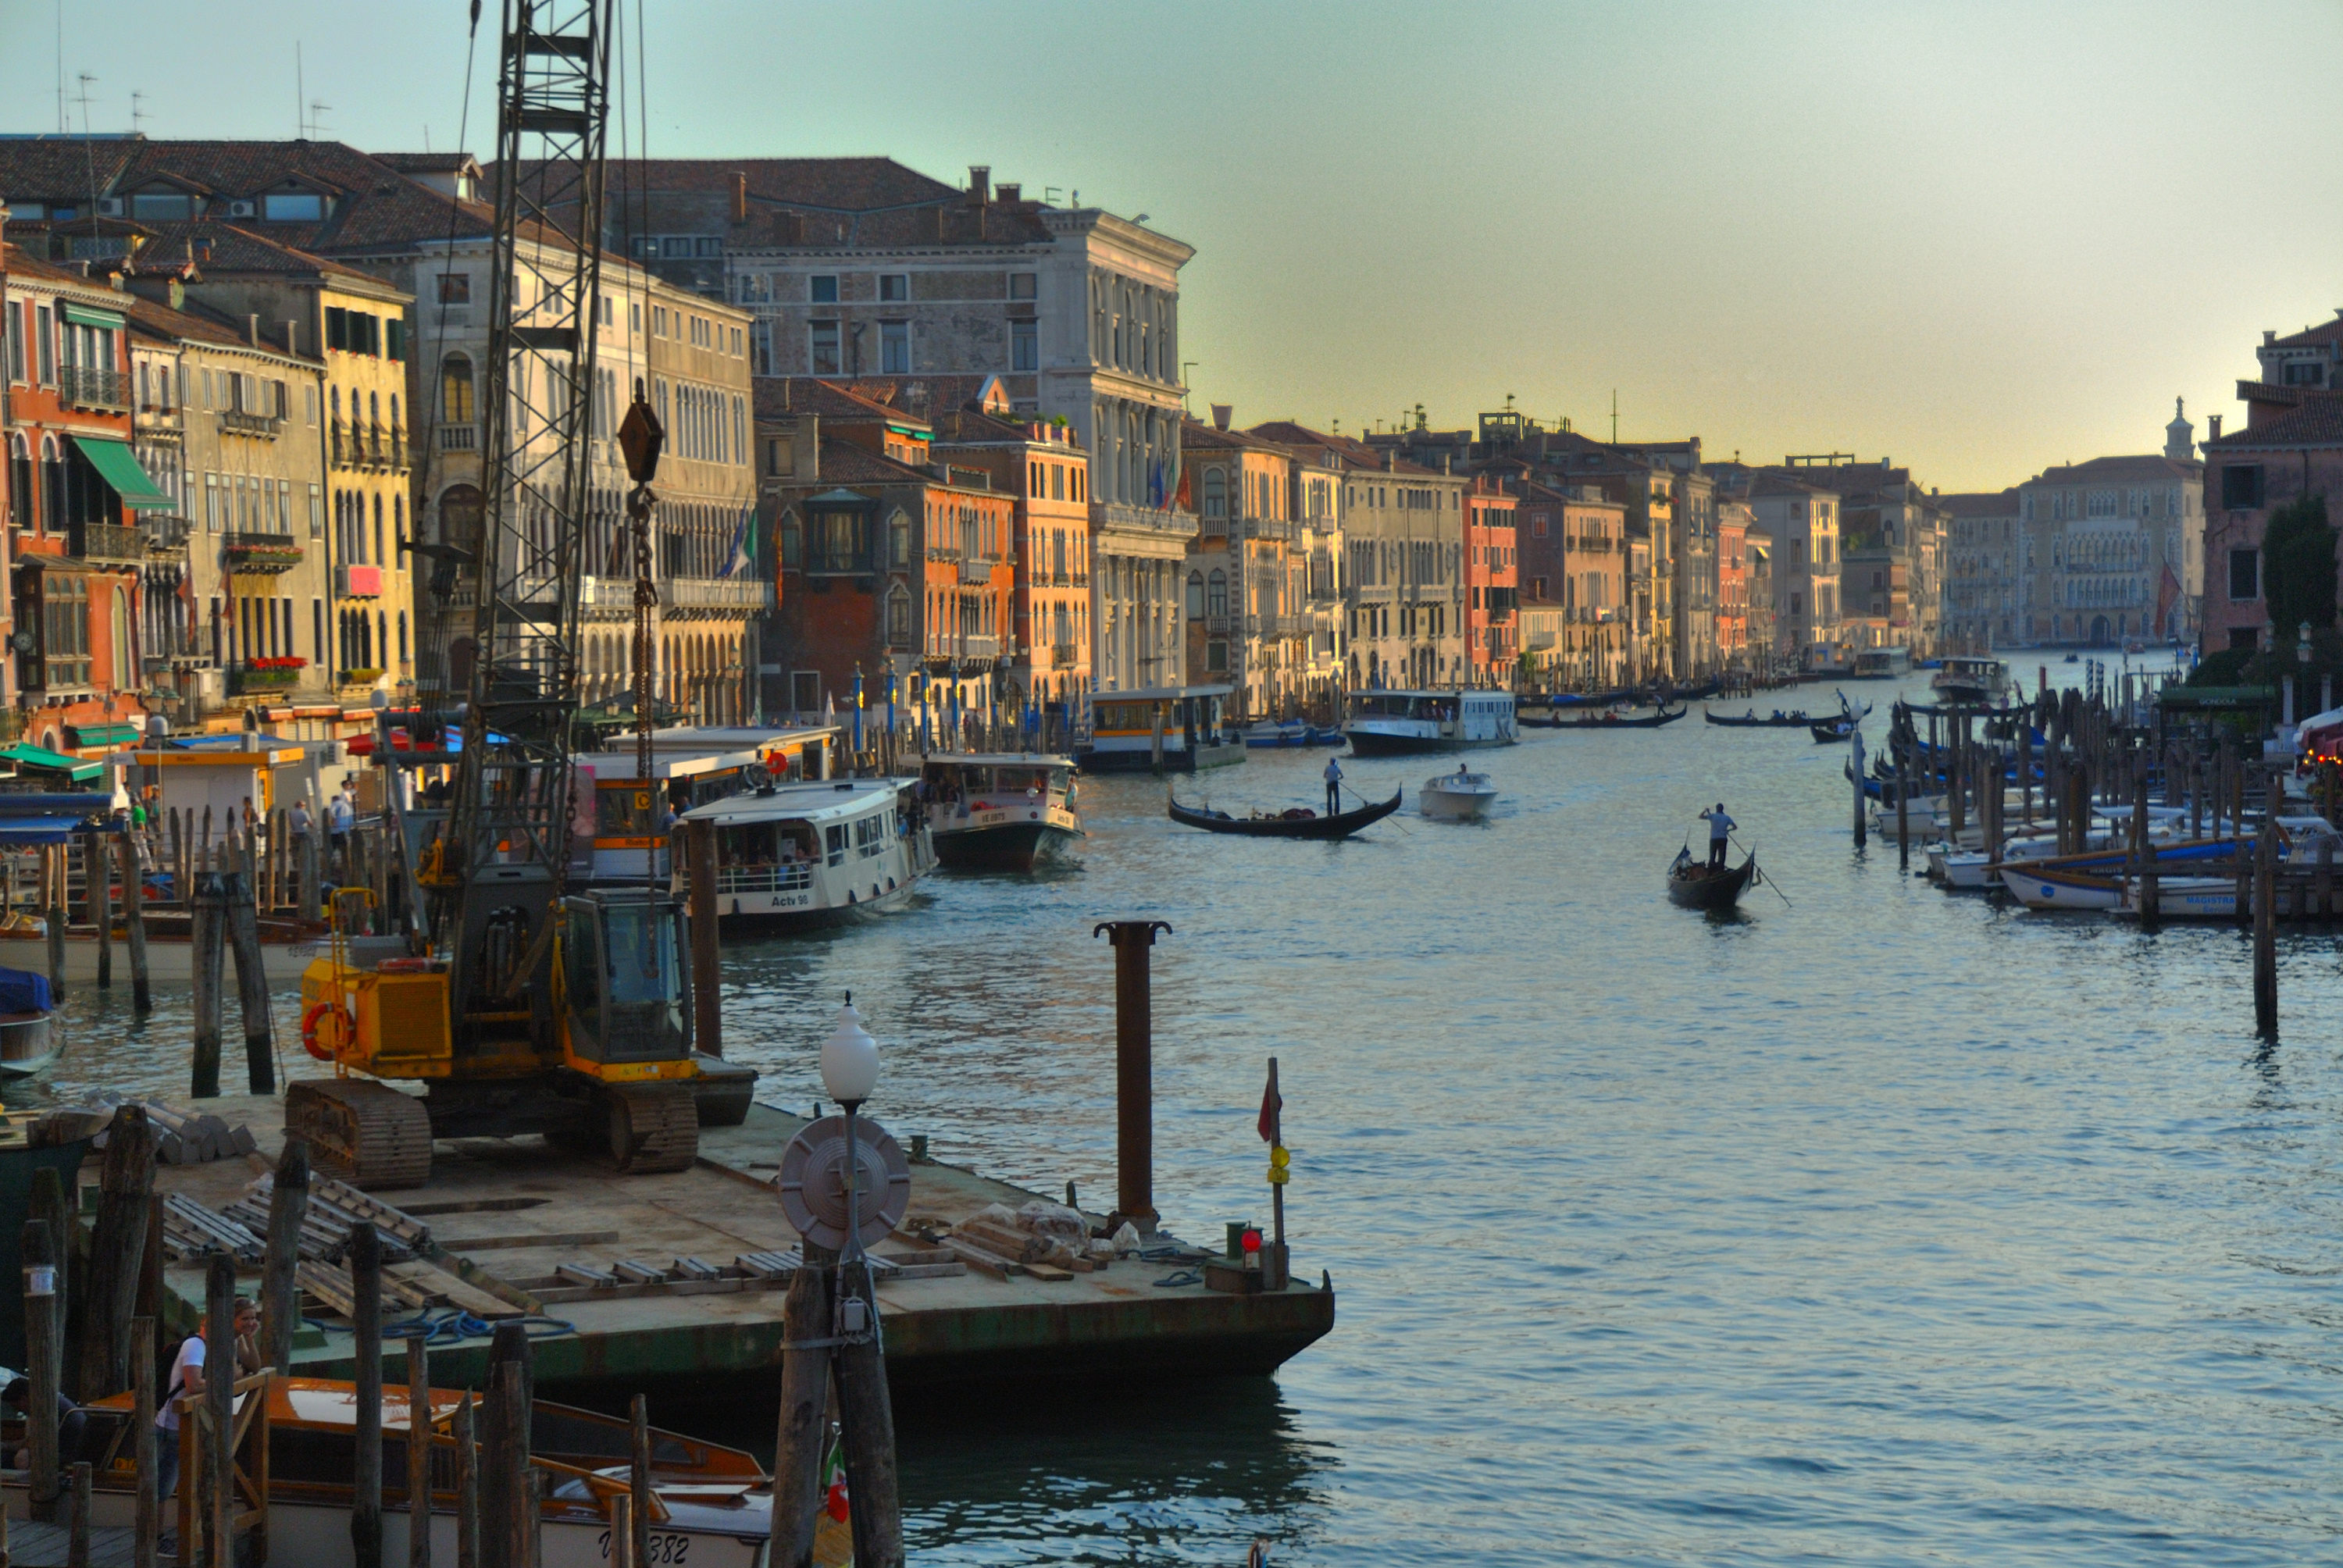 A picturesque view of the Grand Canal from the Vaporetto